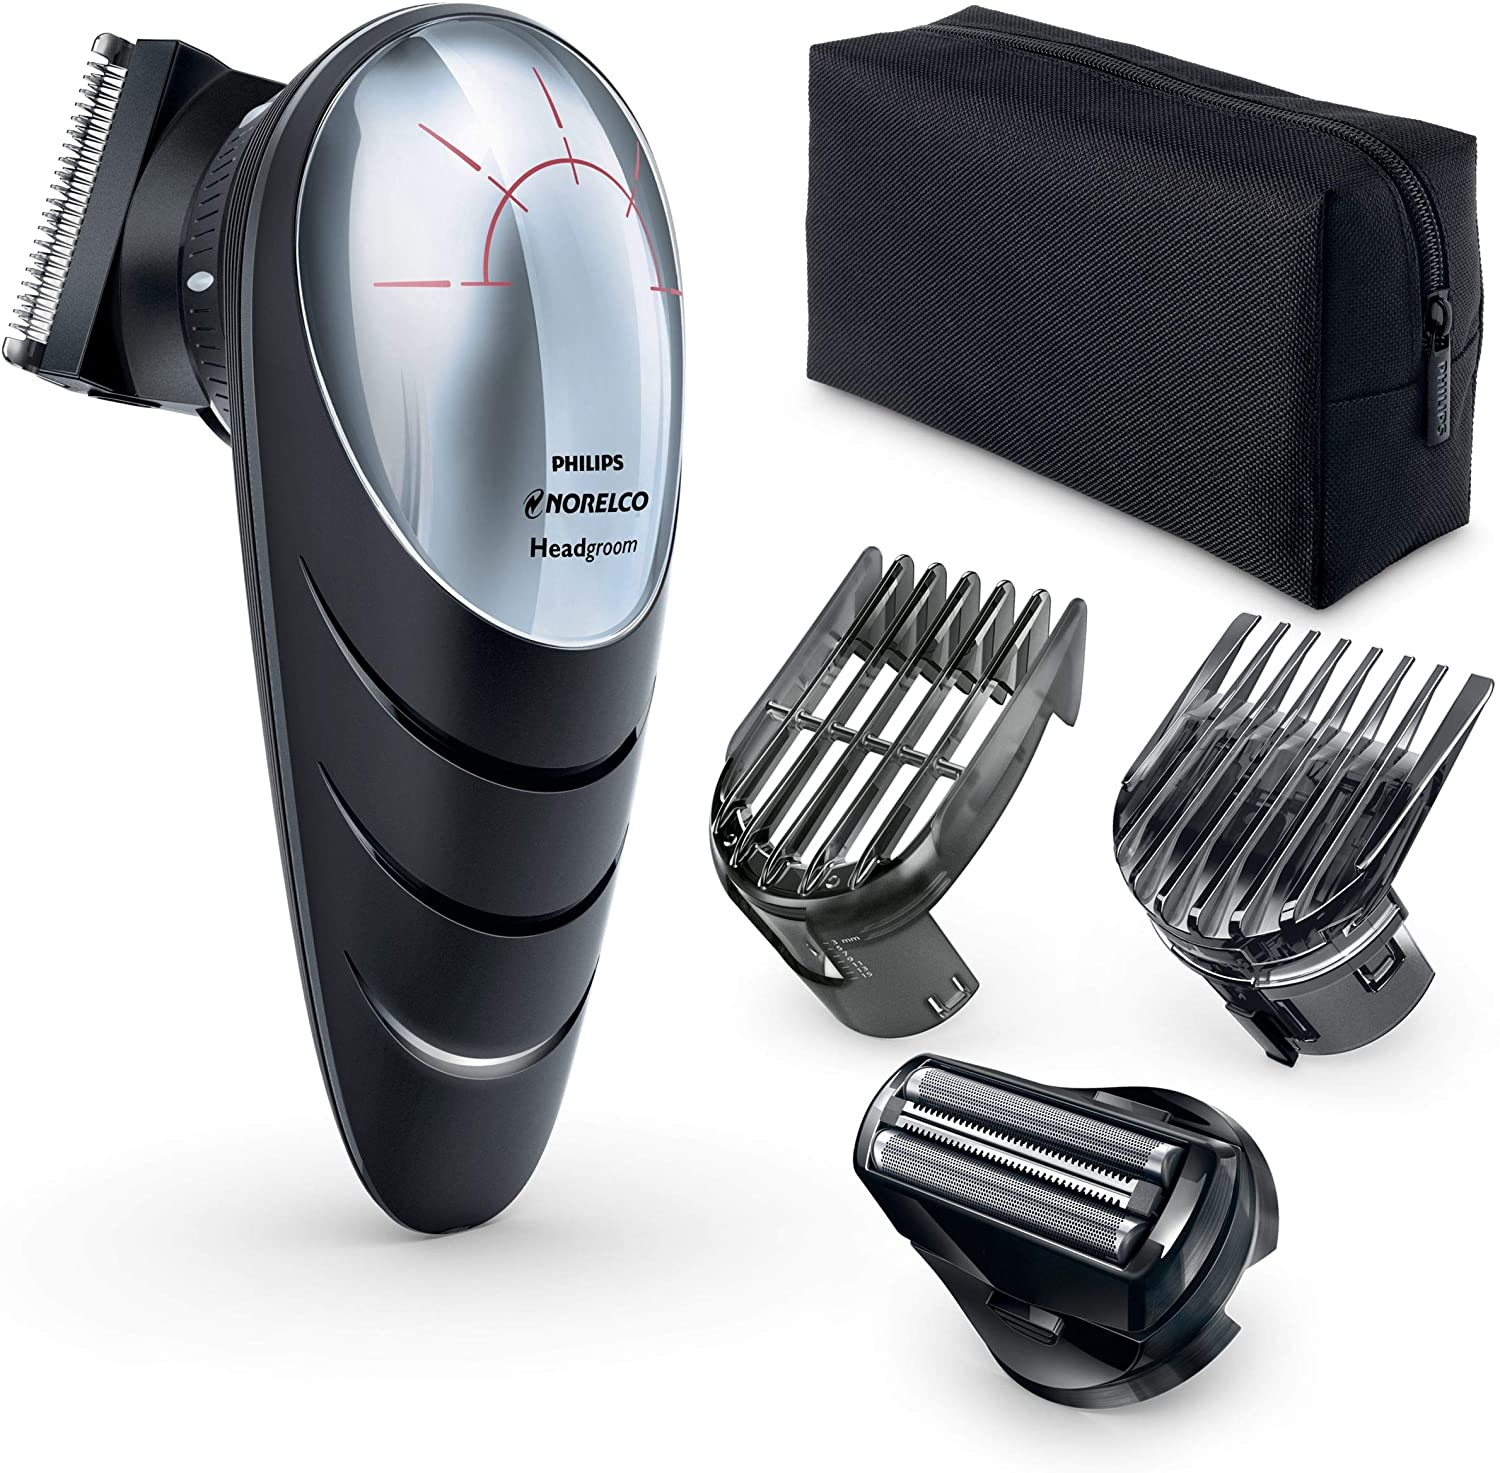 Philips Norelco Hair Clipper Pro